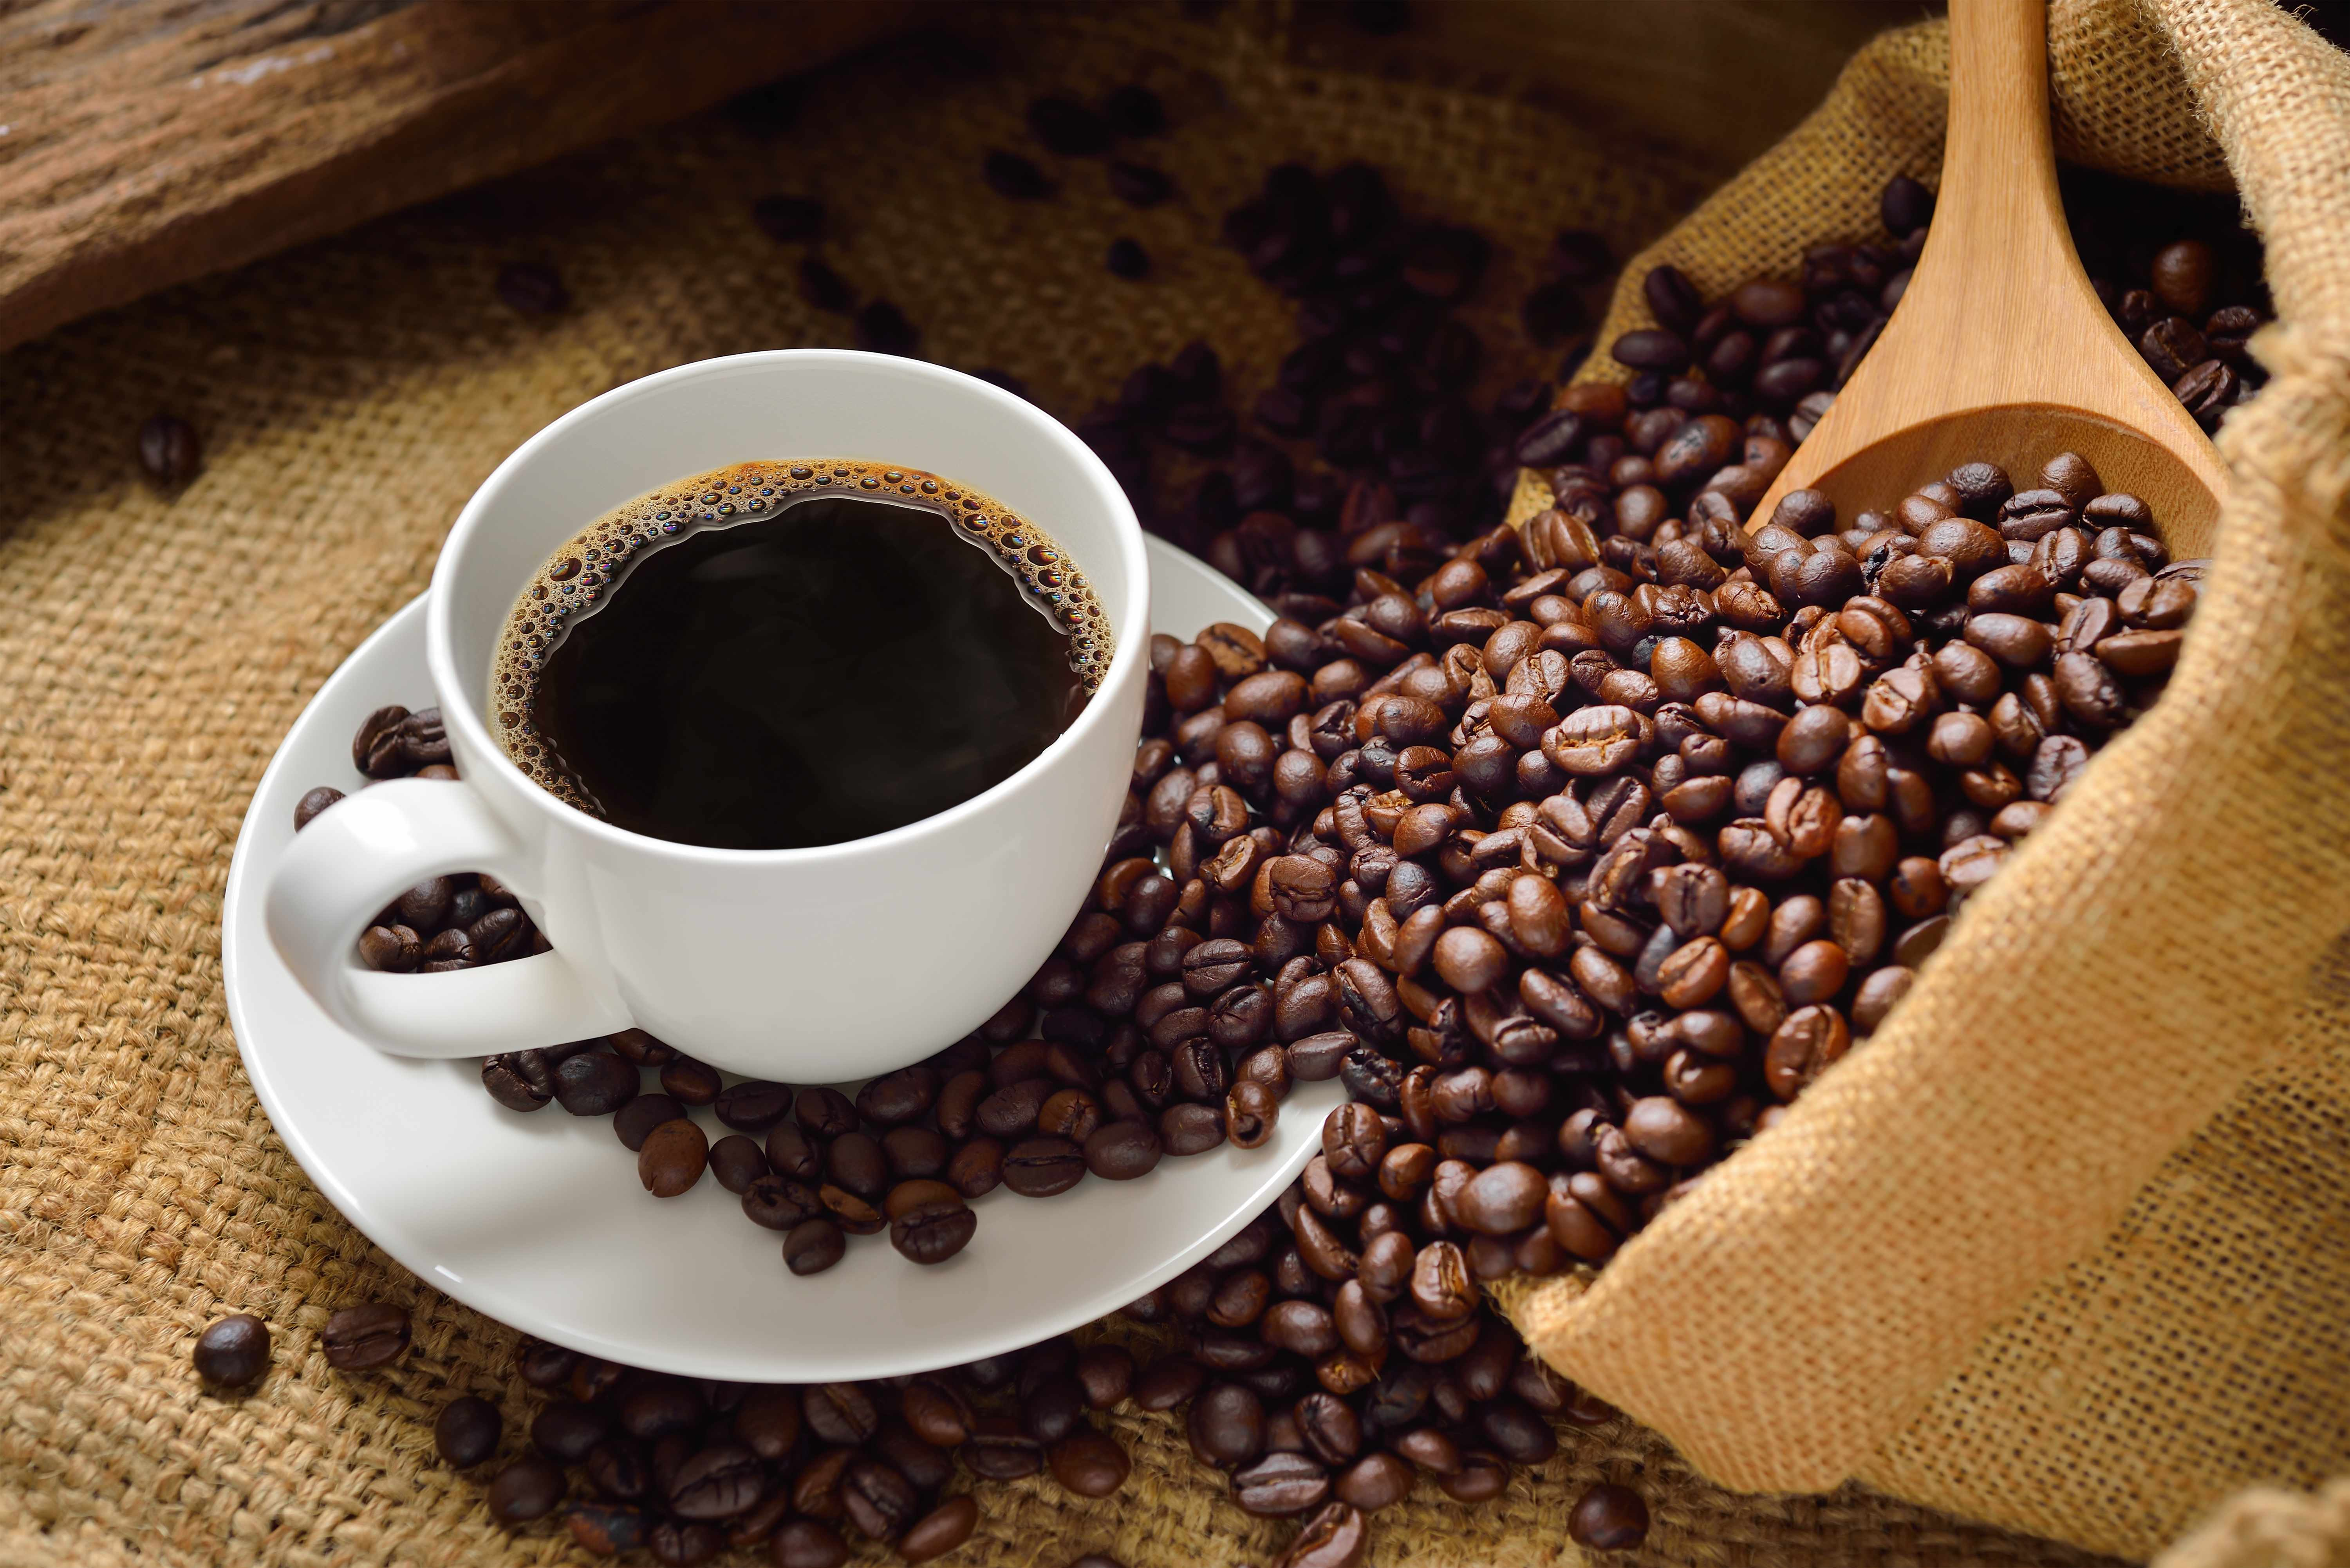 a cup of coffee on a burlap cloth and coffee beans spilling around the table